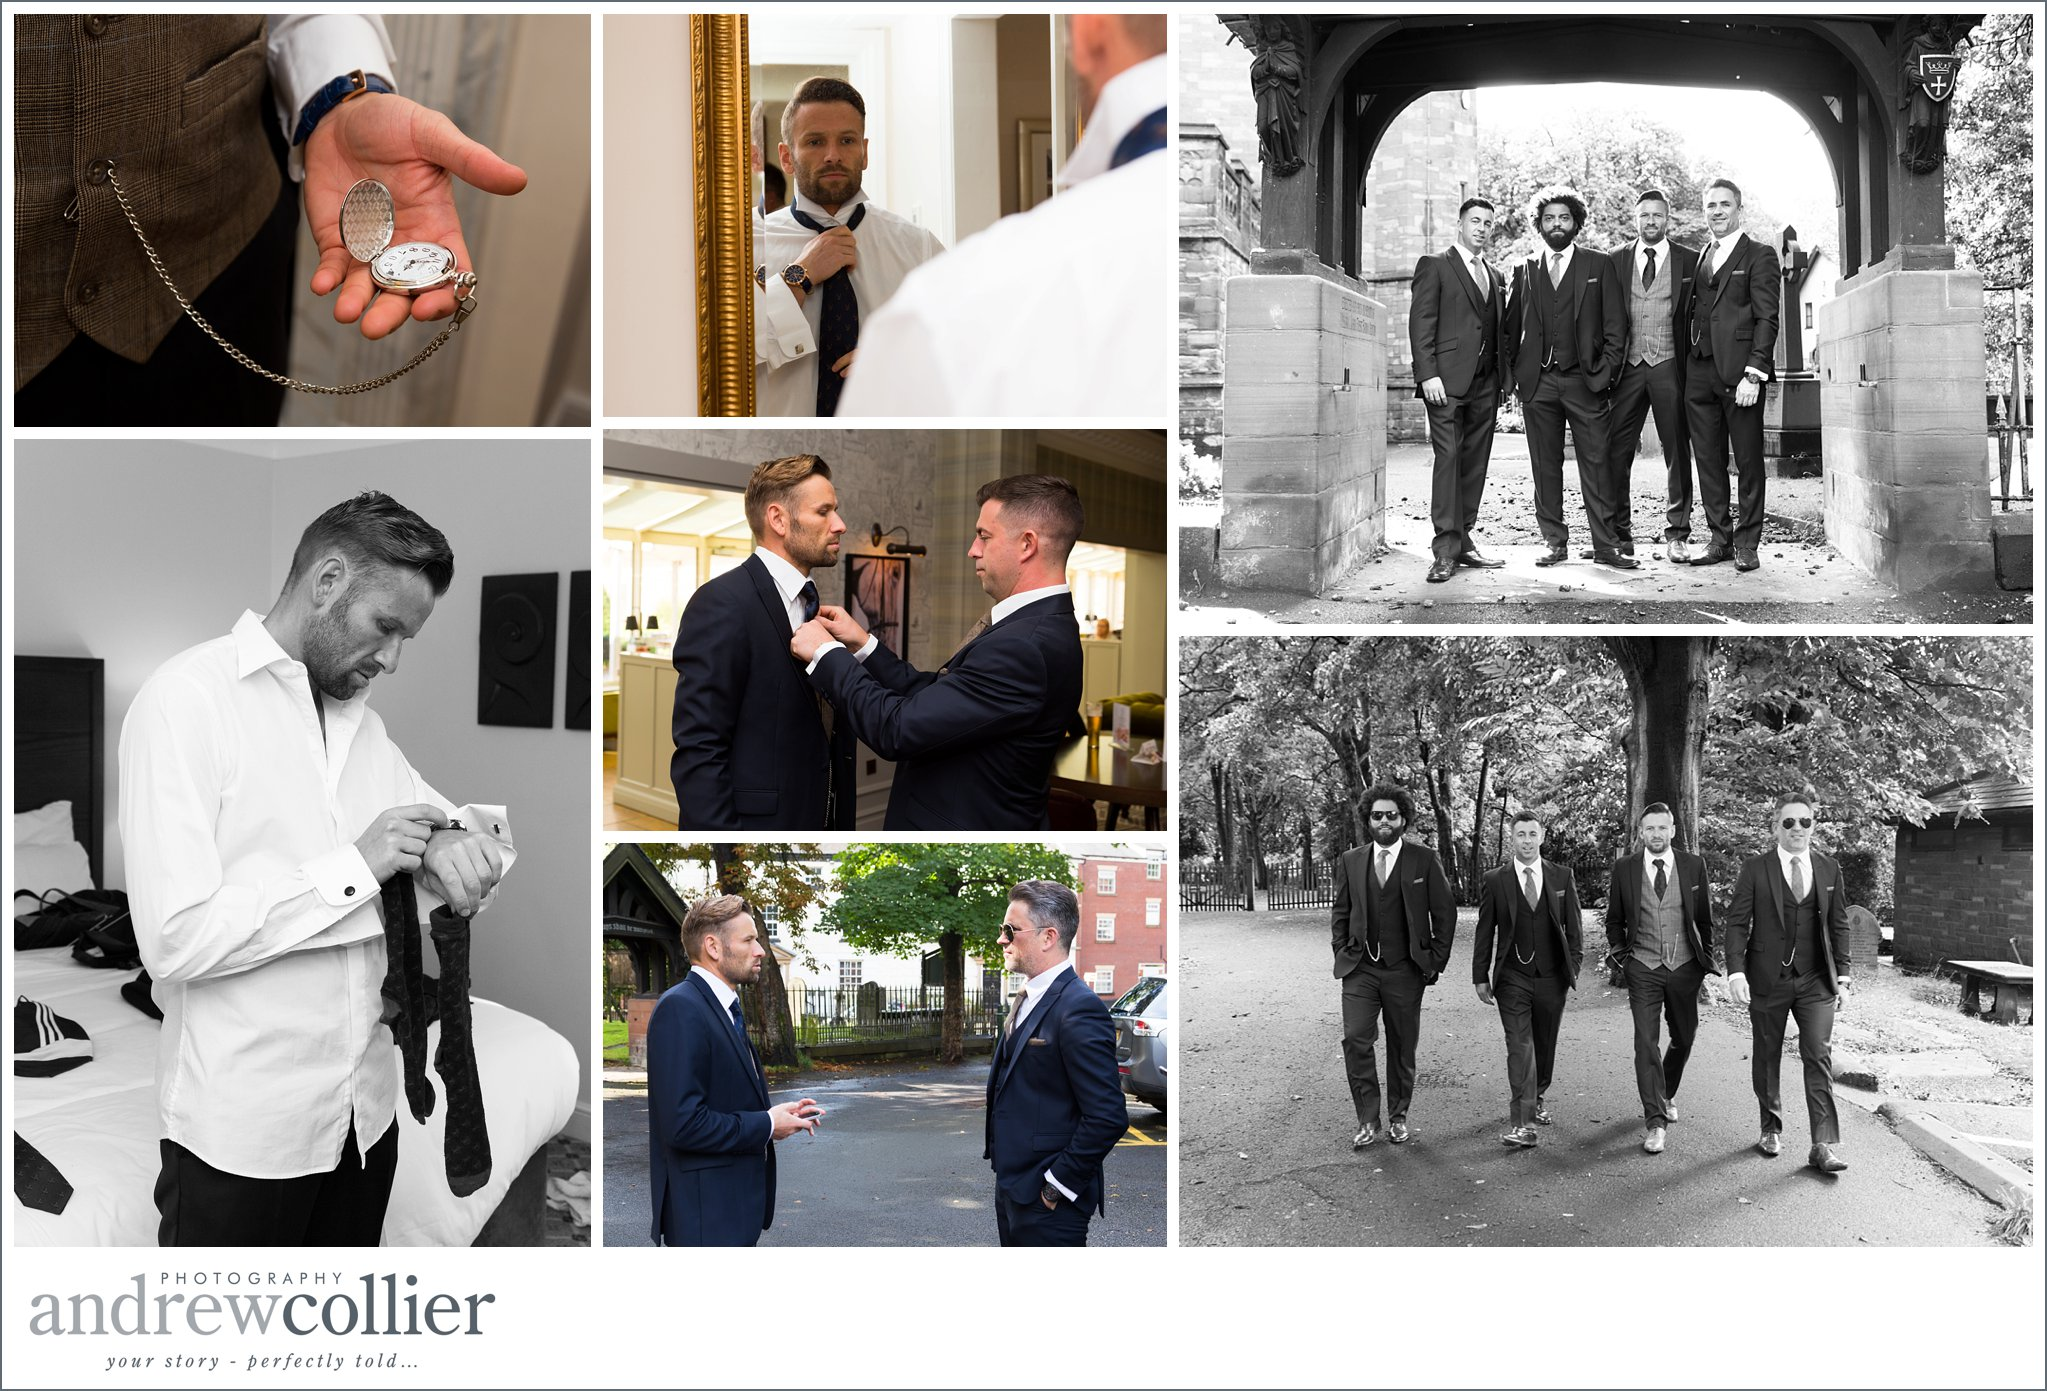 Photographs of the groom and his chosen men